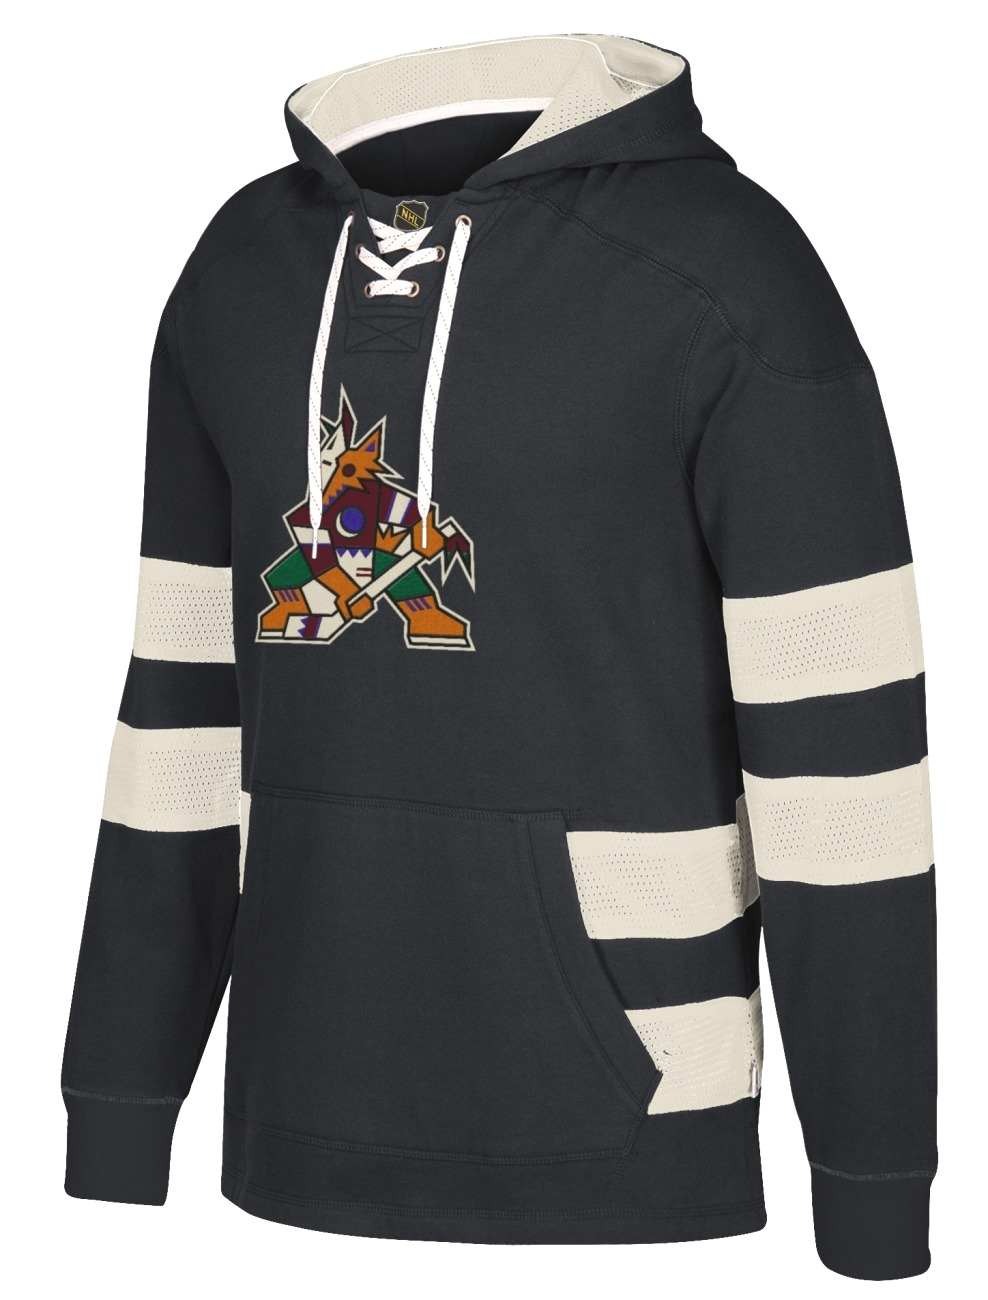 "Phoenix Coyotes CCM NHL ""Penalty Kill"" Men's Vintage Jersey Sweatshirt"